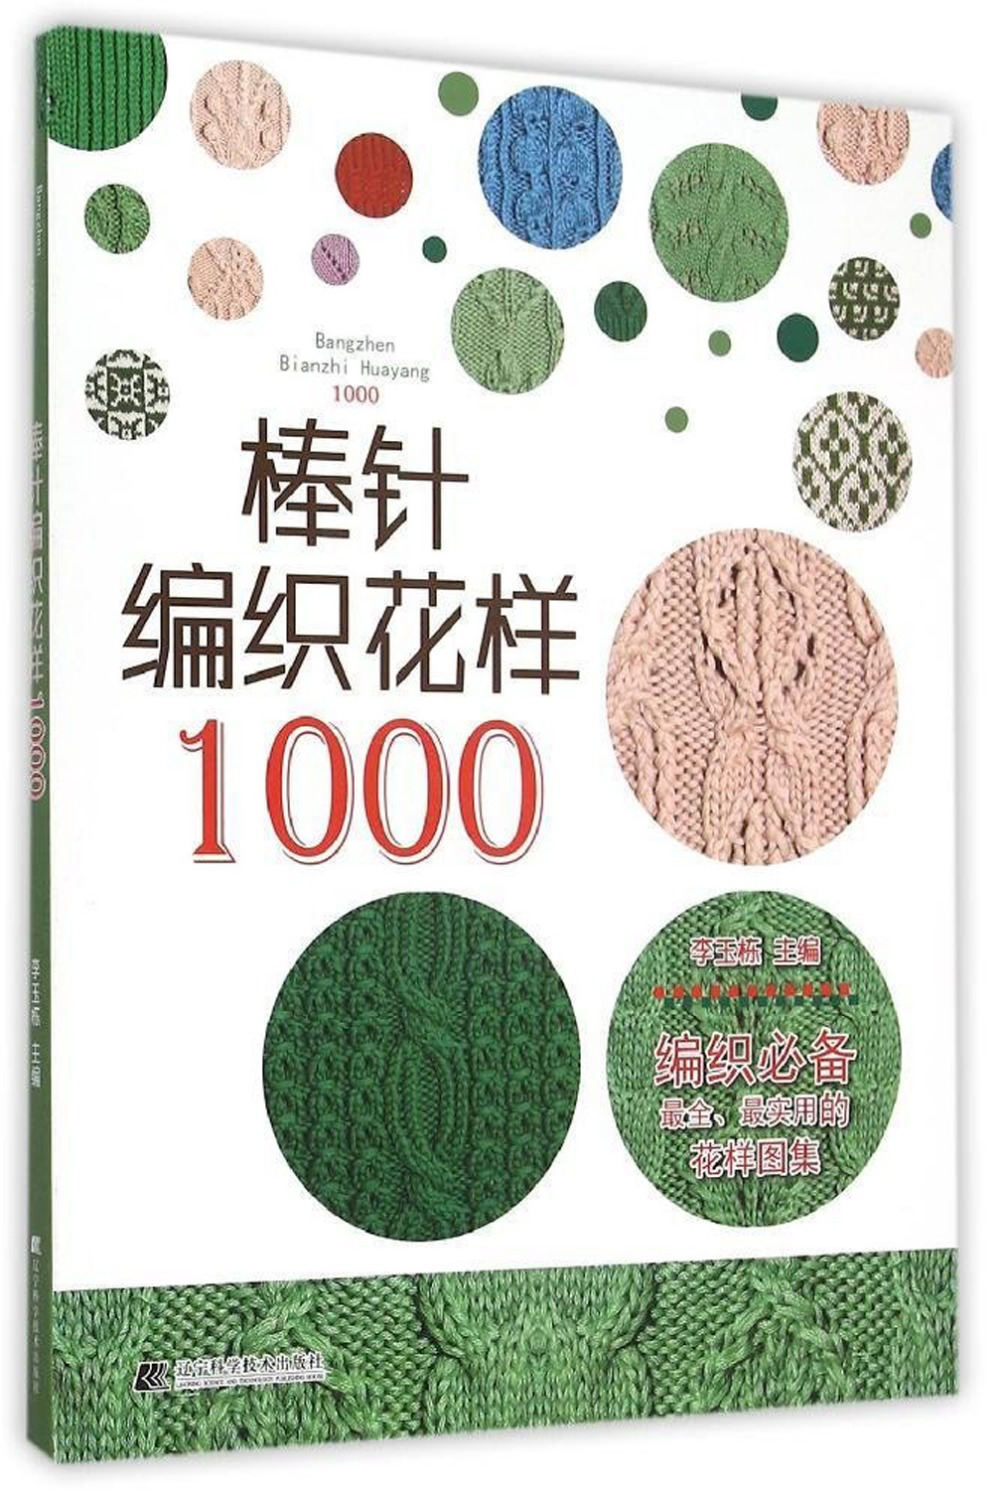 Chinese Knitting Pattern Book with 1000 Different Pattern all kinds of knitting pattern book practical knitting tool book 200 kinds of knitting needles with colorful pictures